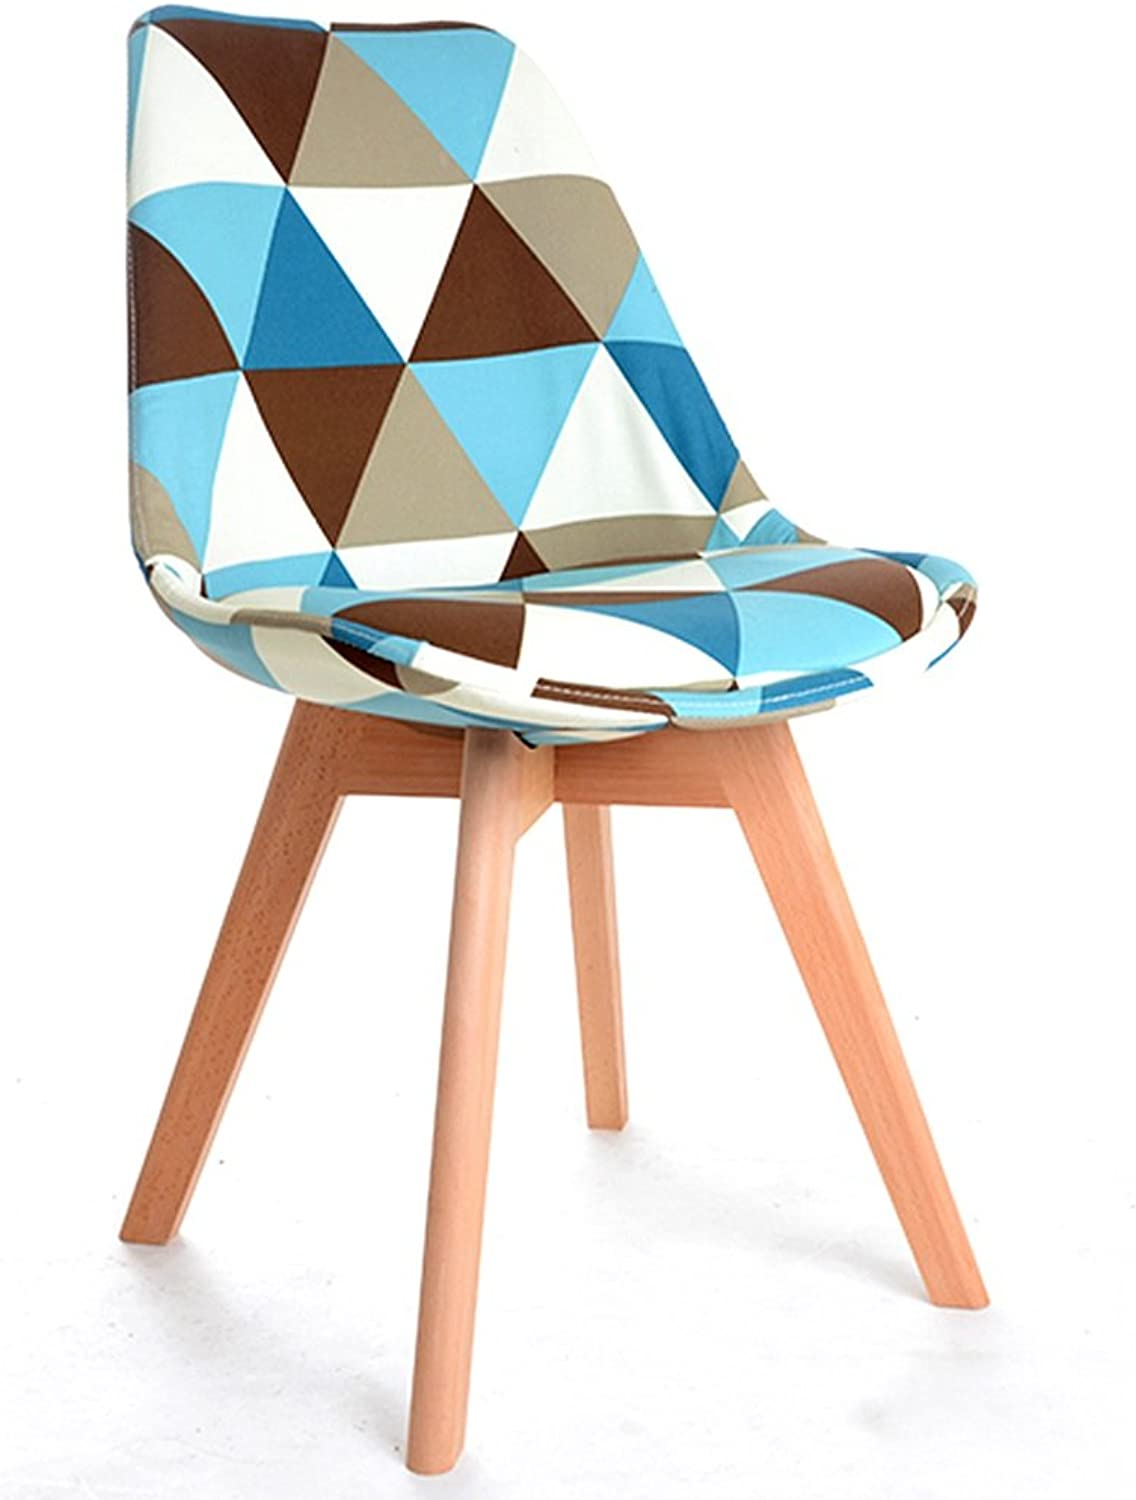 Chairs Solid Wood Dining Chairs Casual Study Makeup Chairs Simple Home Adult Chairs Fabric Chairs Coffee Chairs Dining Room Fashion Chairs (color    B)